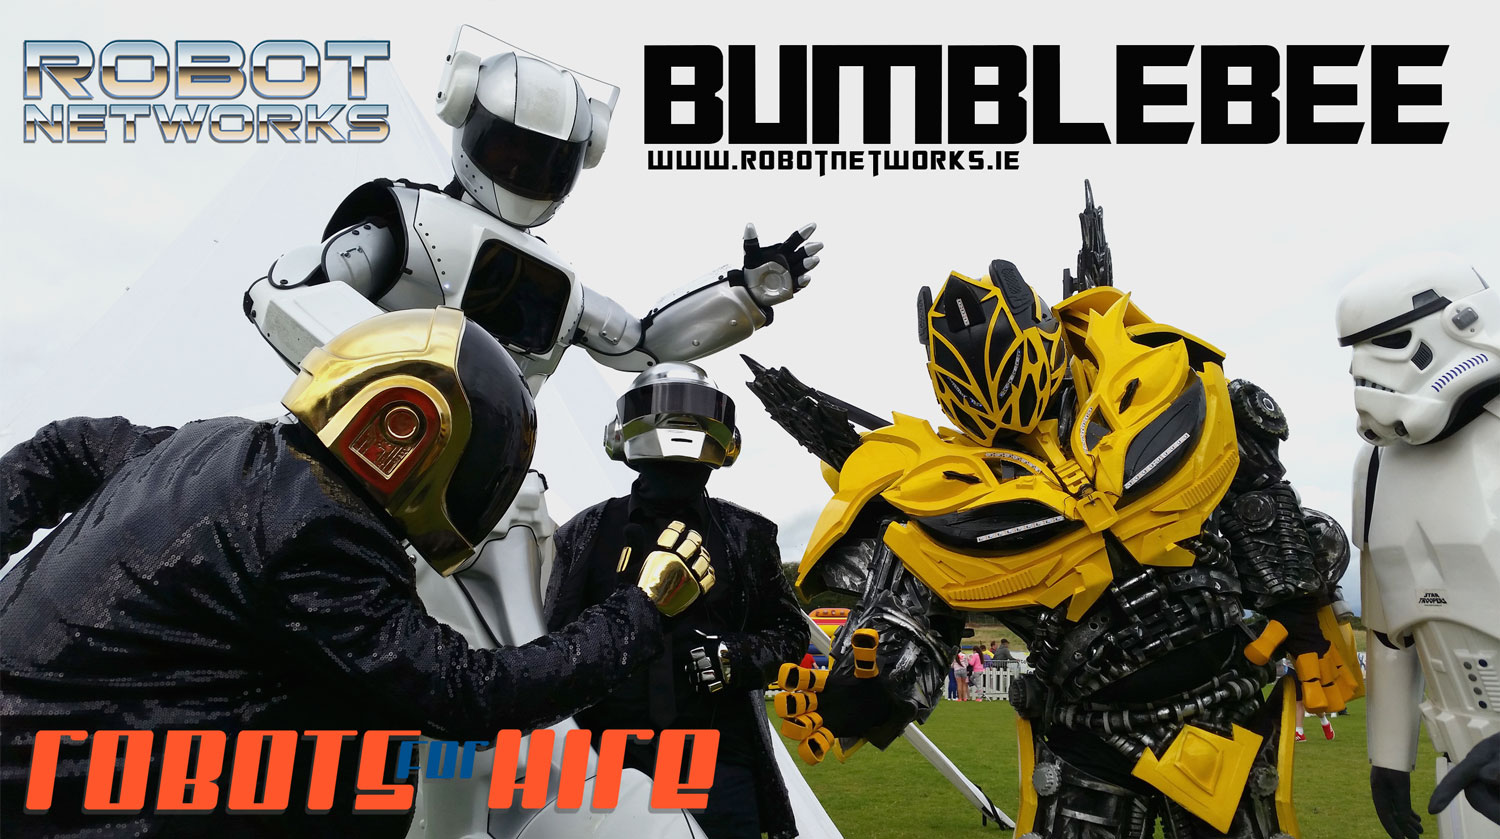 Robot-networks_BumbleBee_hire_dublin_events